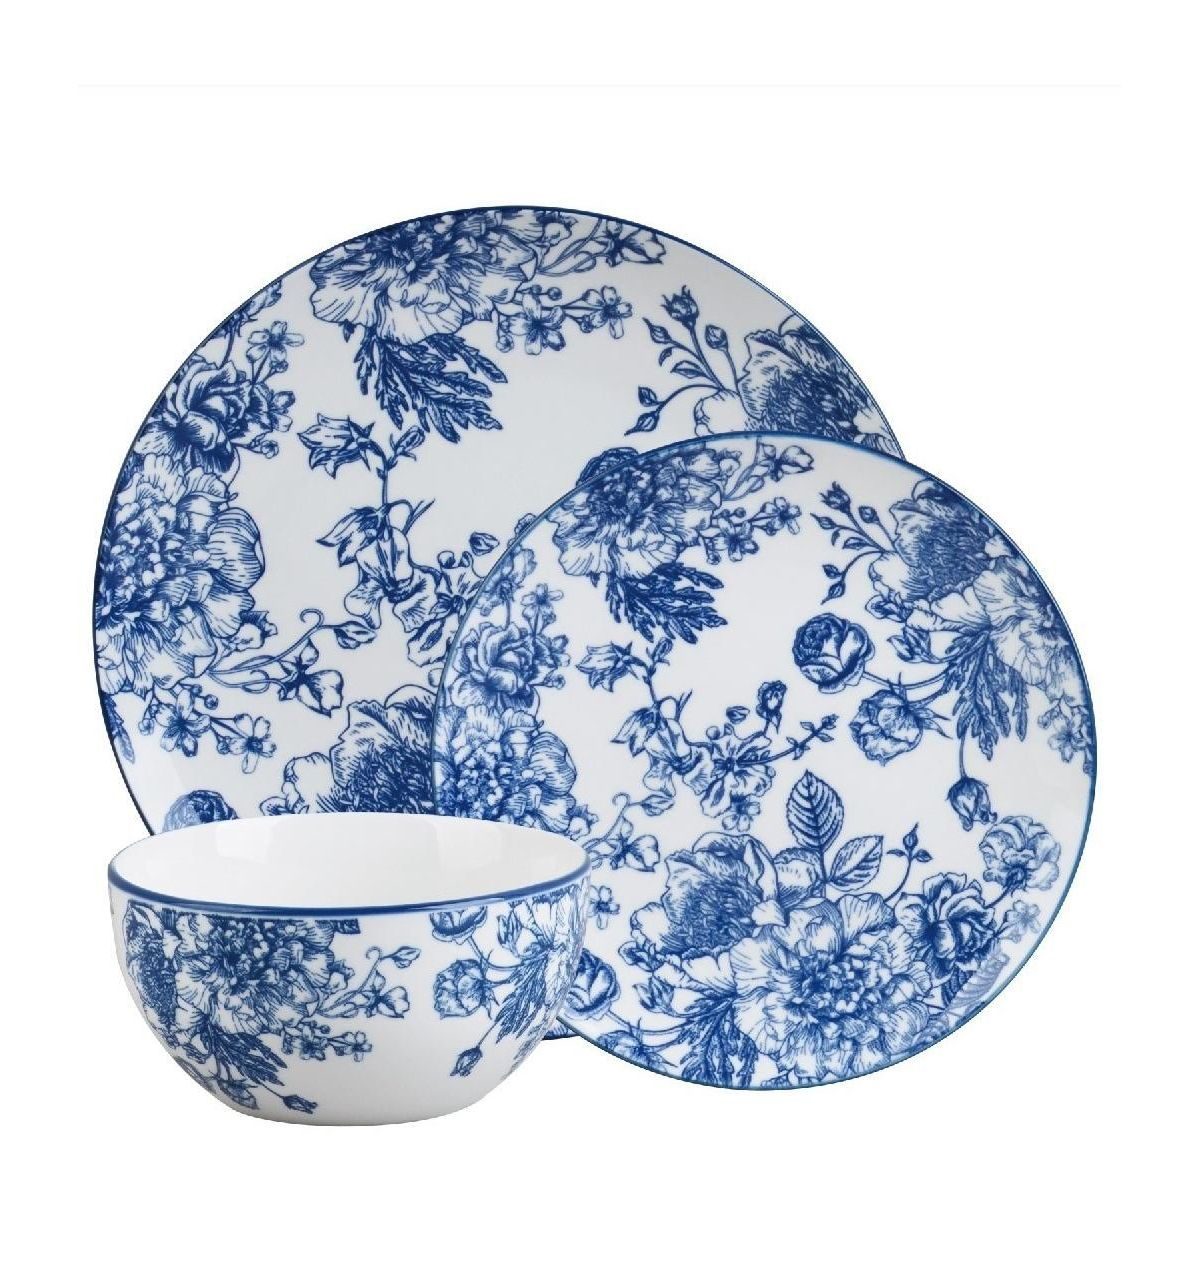 Godinger Blue Floral 12 Piece Dinnerware Set Service For 4 Reviews Dinnerware Dining Macy S In 2021 Blue Dinnerware Sets Blue Dinnerware Blue And White Dinnerware Blue and white salad plates